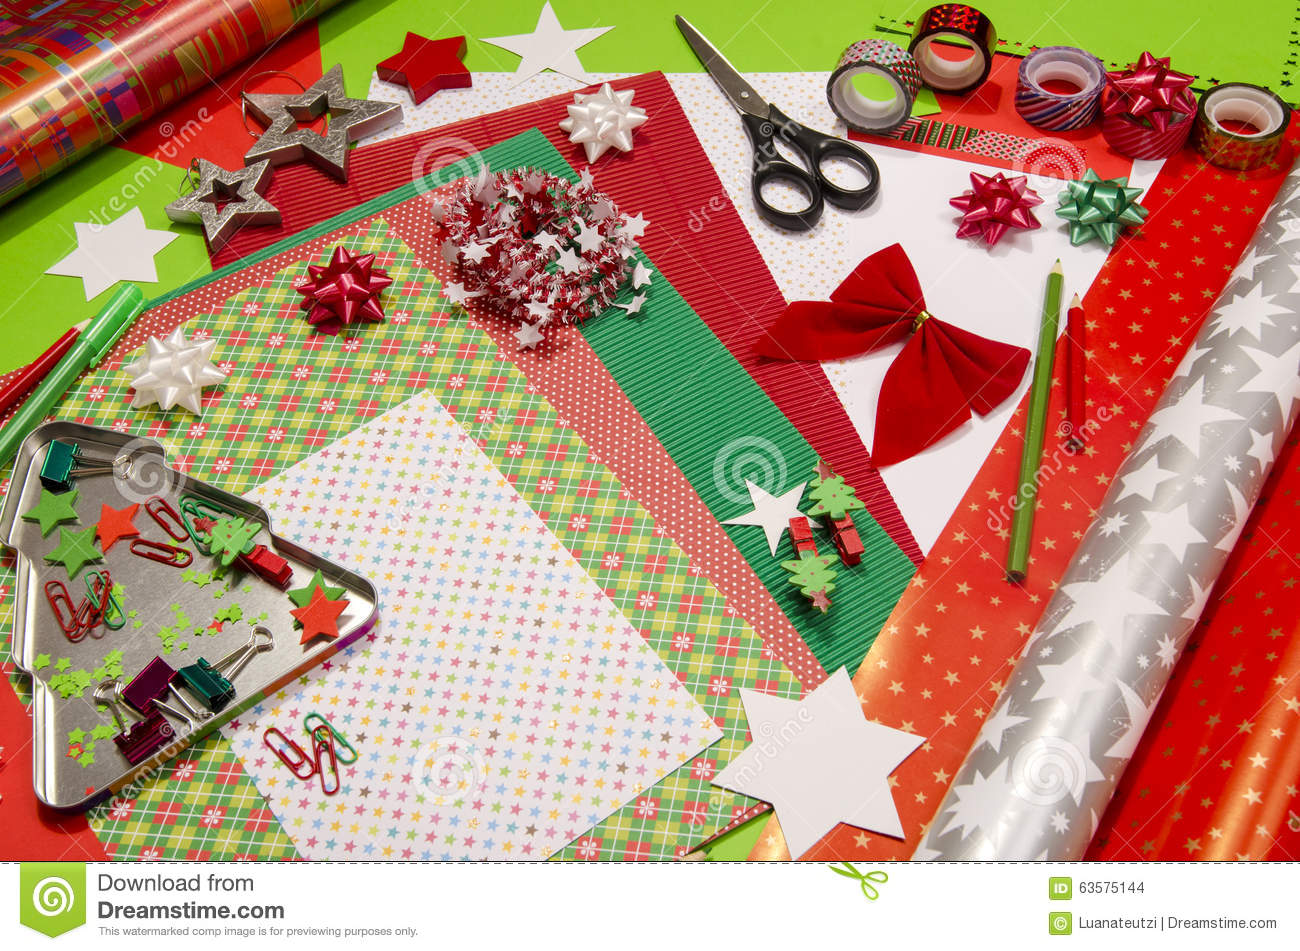 Attractive Craft Supplies Christmas Part - 2: Christmas Colorful Craft Paper Scissors Supplies ...